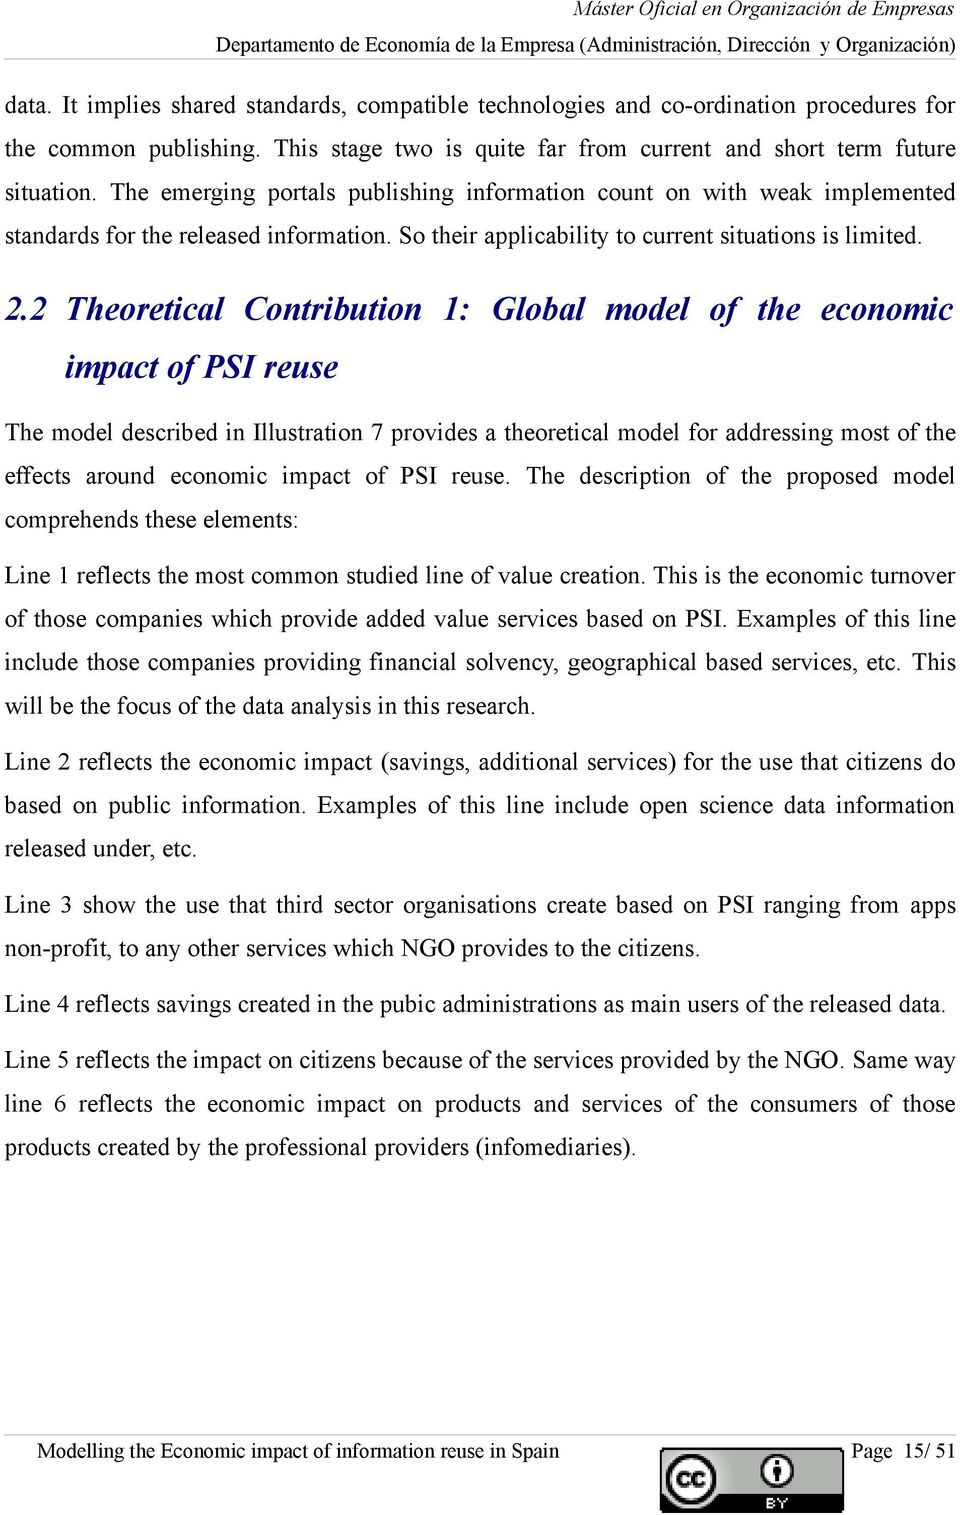 2 Theoretical Contribution 1: Global model of the economic impact of PSI reuse The model described in Illustration 7 provides a theoretical model for addressing most of the effects around economic